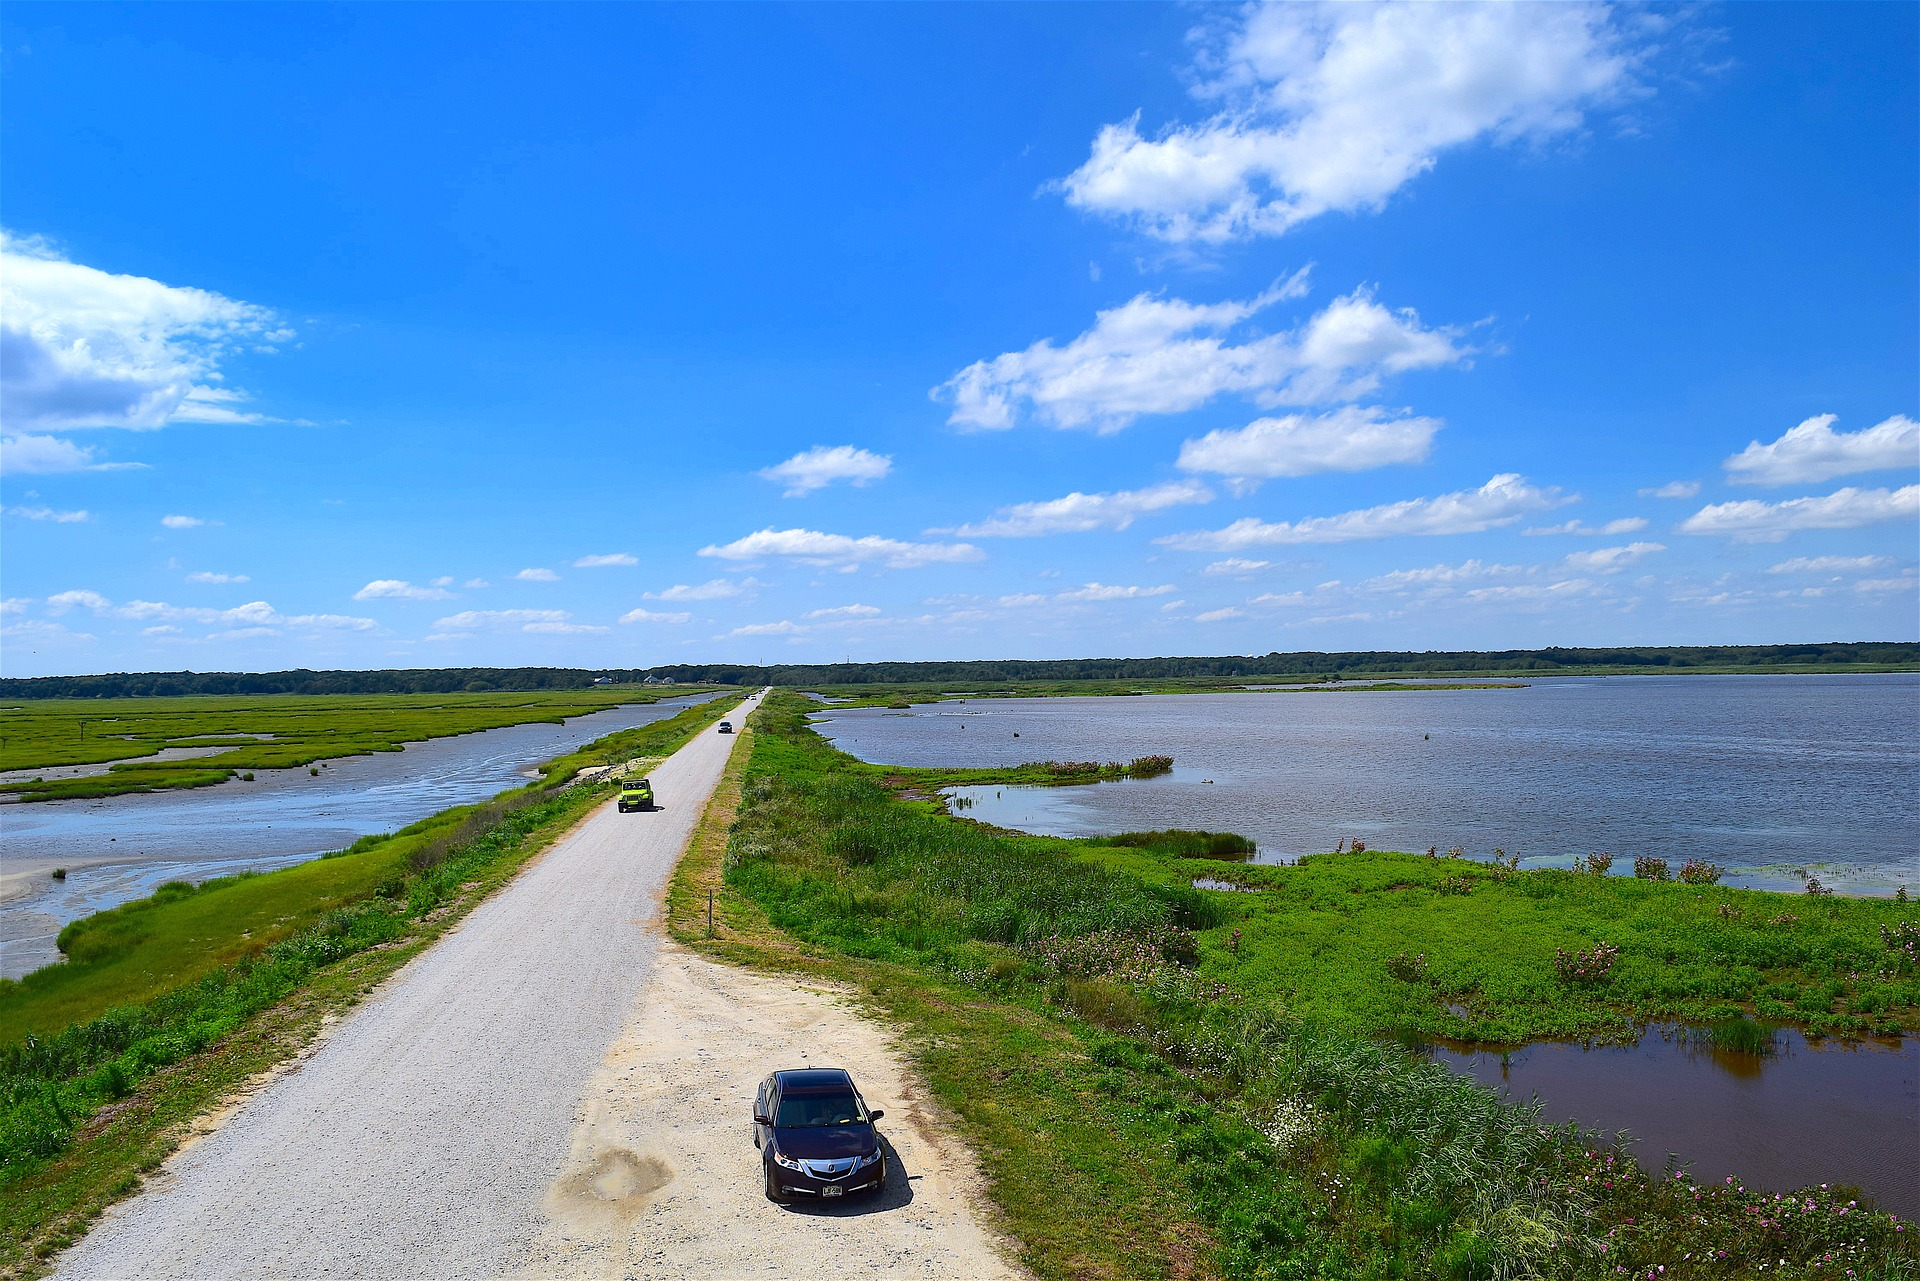 a road extends into a marsh